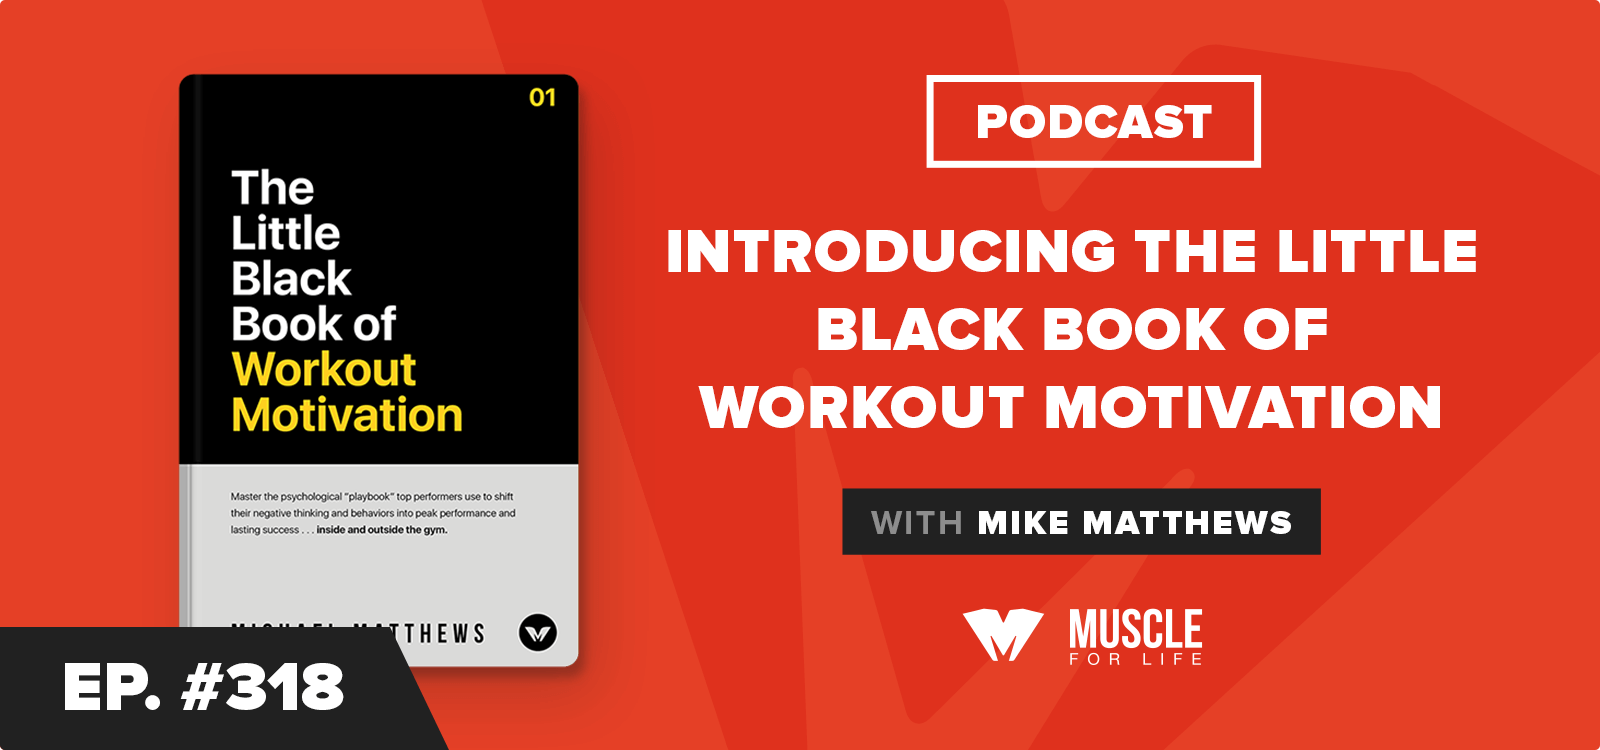 Introducing The Little Black Book of Workout Motivation